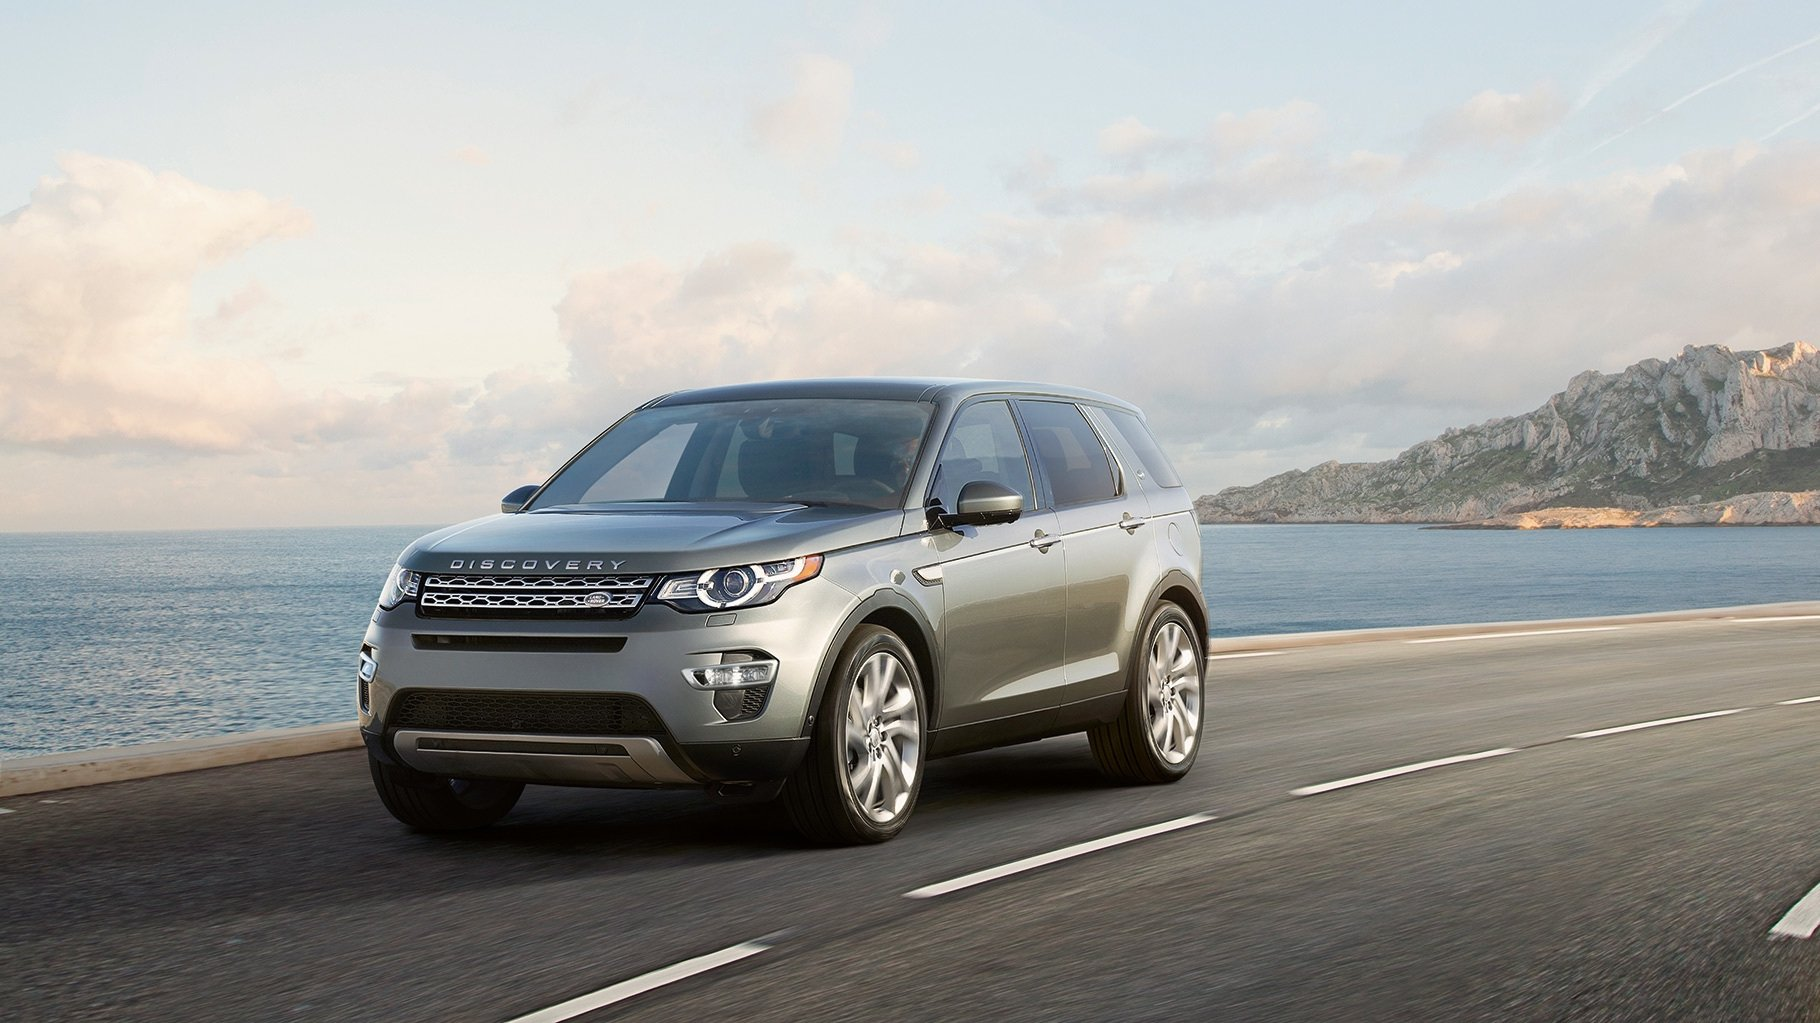 Land Rover Discovery Sport Exterior 2